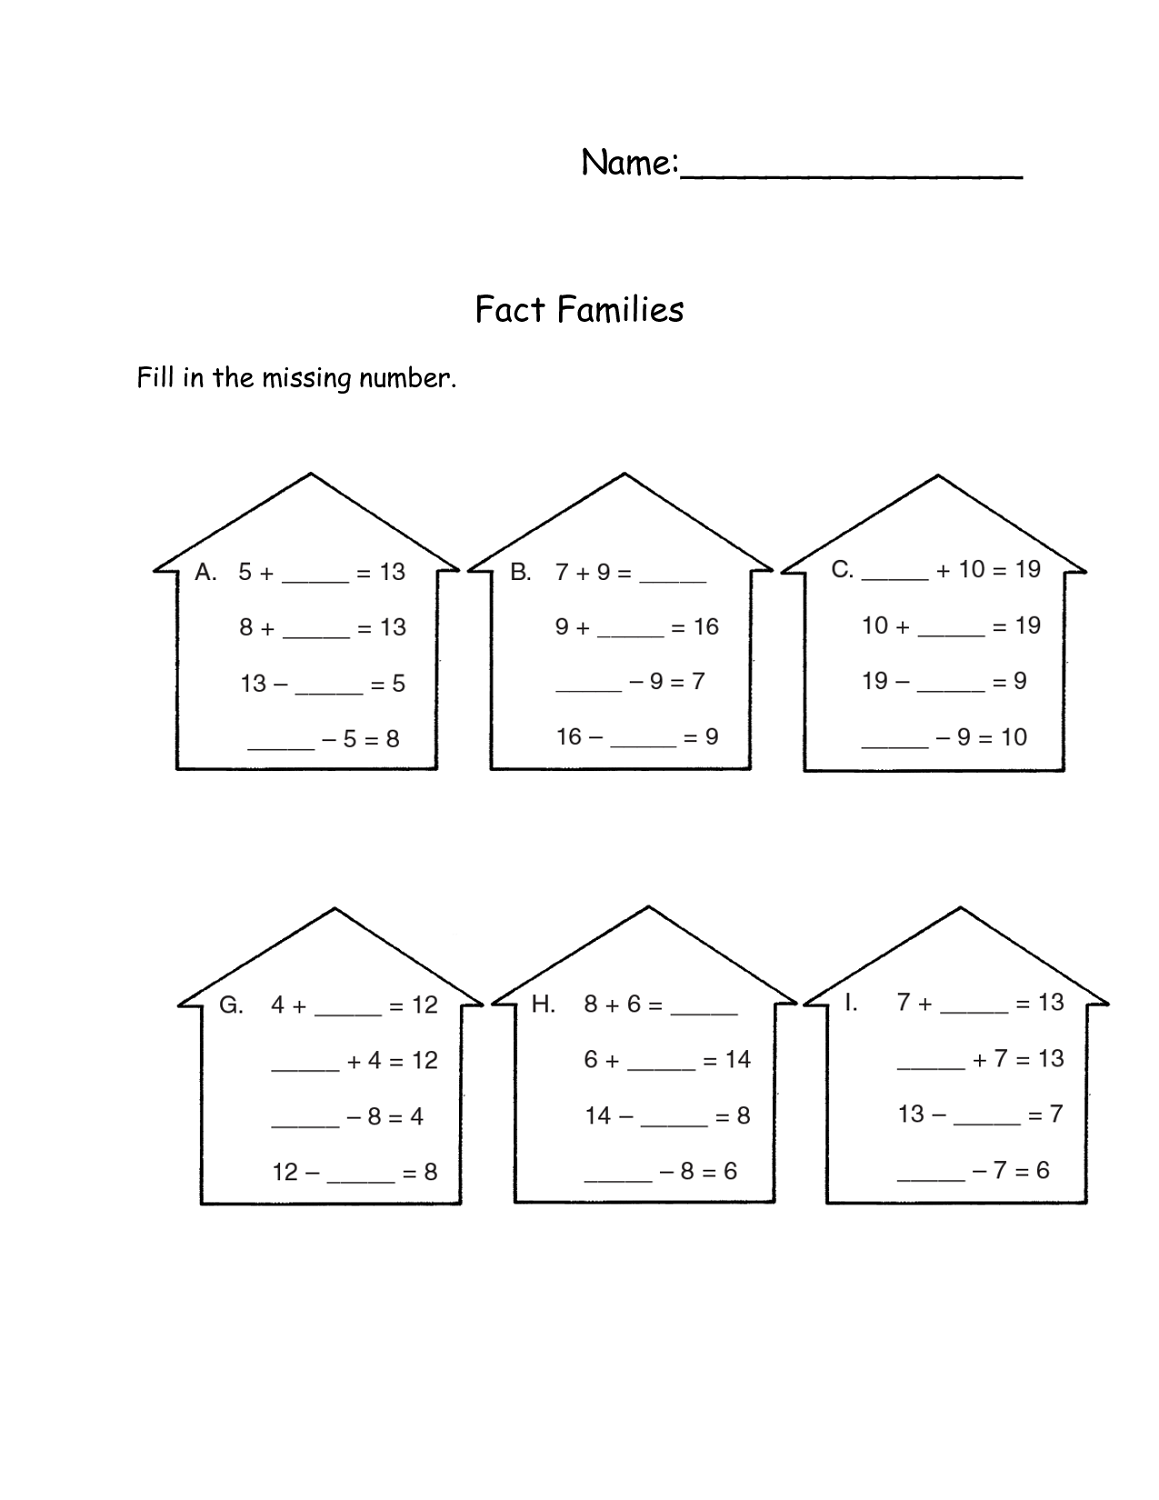 fact families worksheets for kids